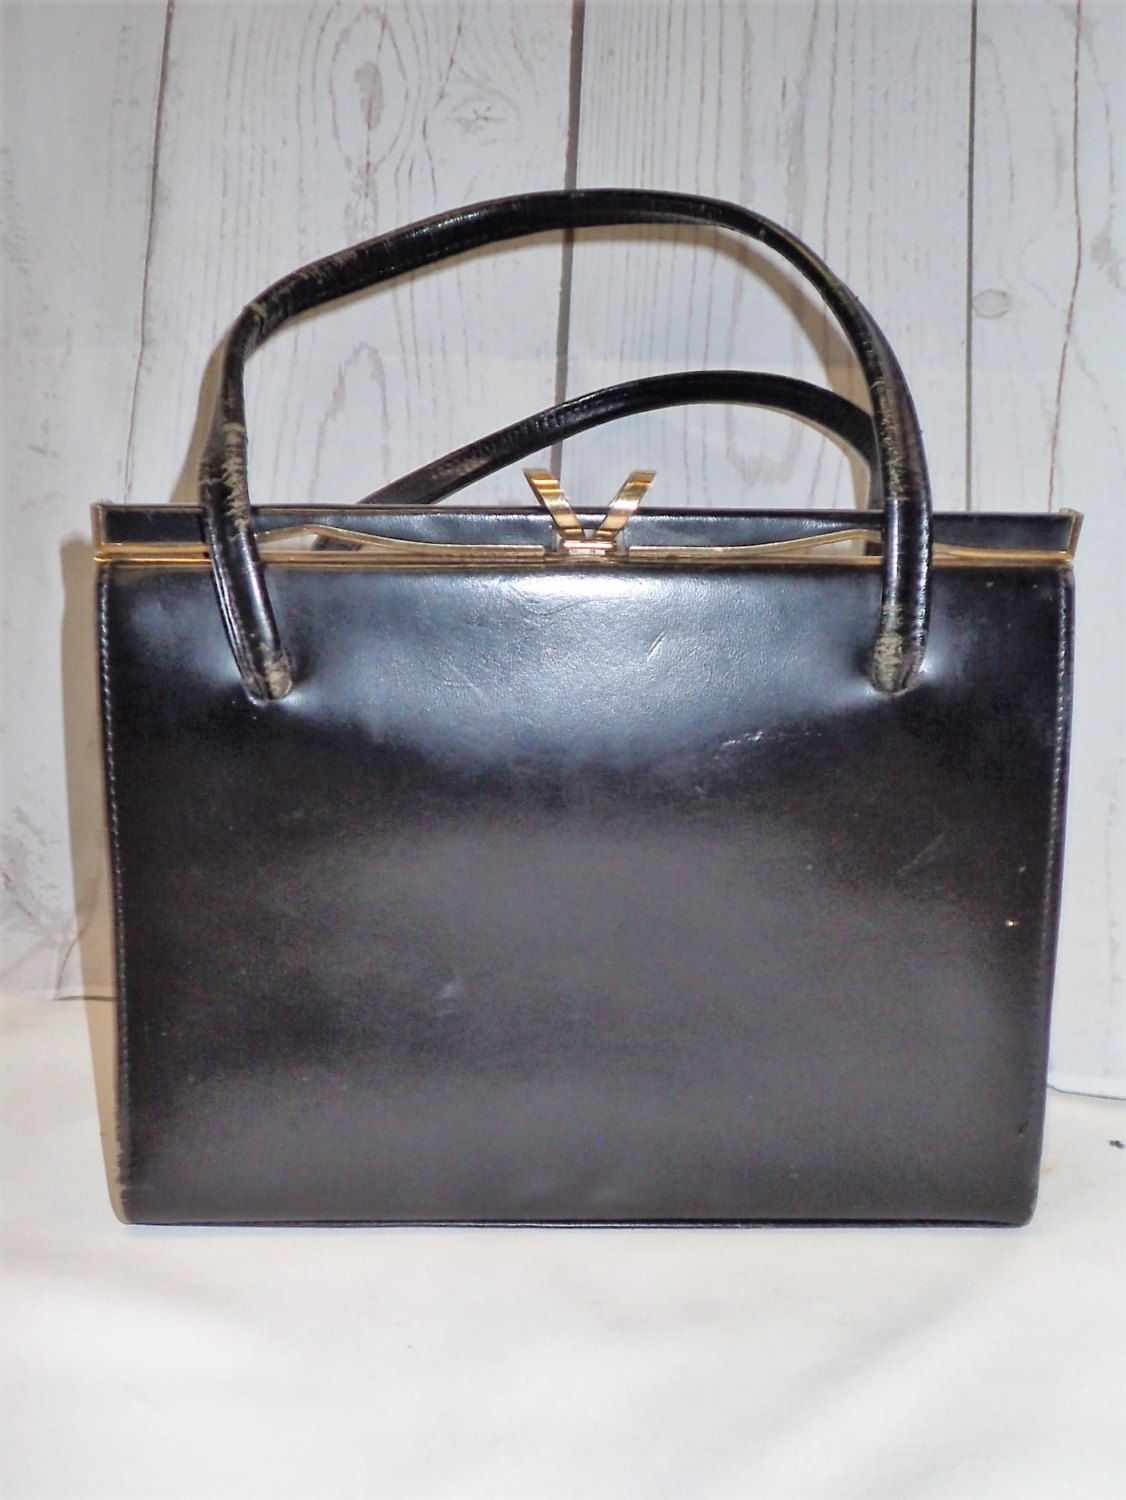 Vintage Black Classic Leather Handbag W Gold Hardware Ackers London Crouch Fitzgerald Made In England Shoulder Bag Top Handle By Doingitsober